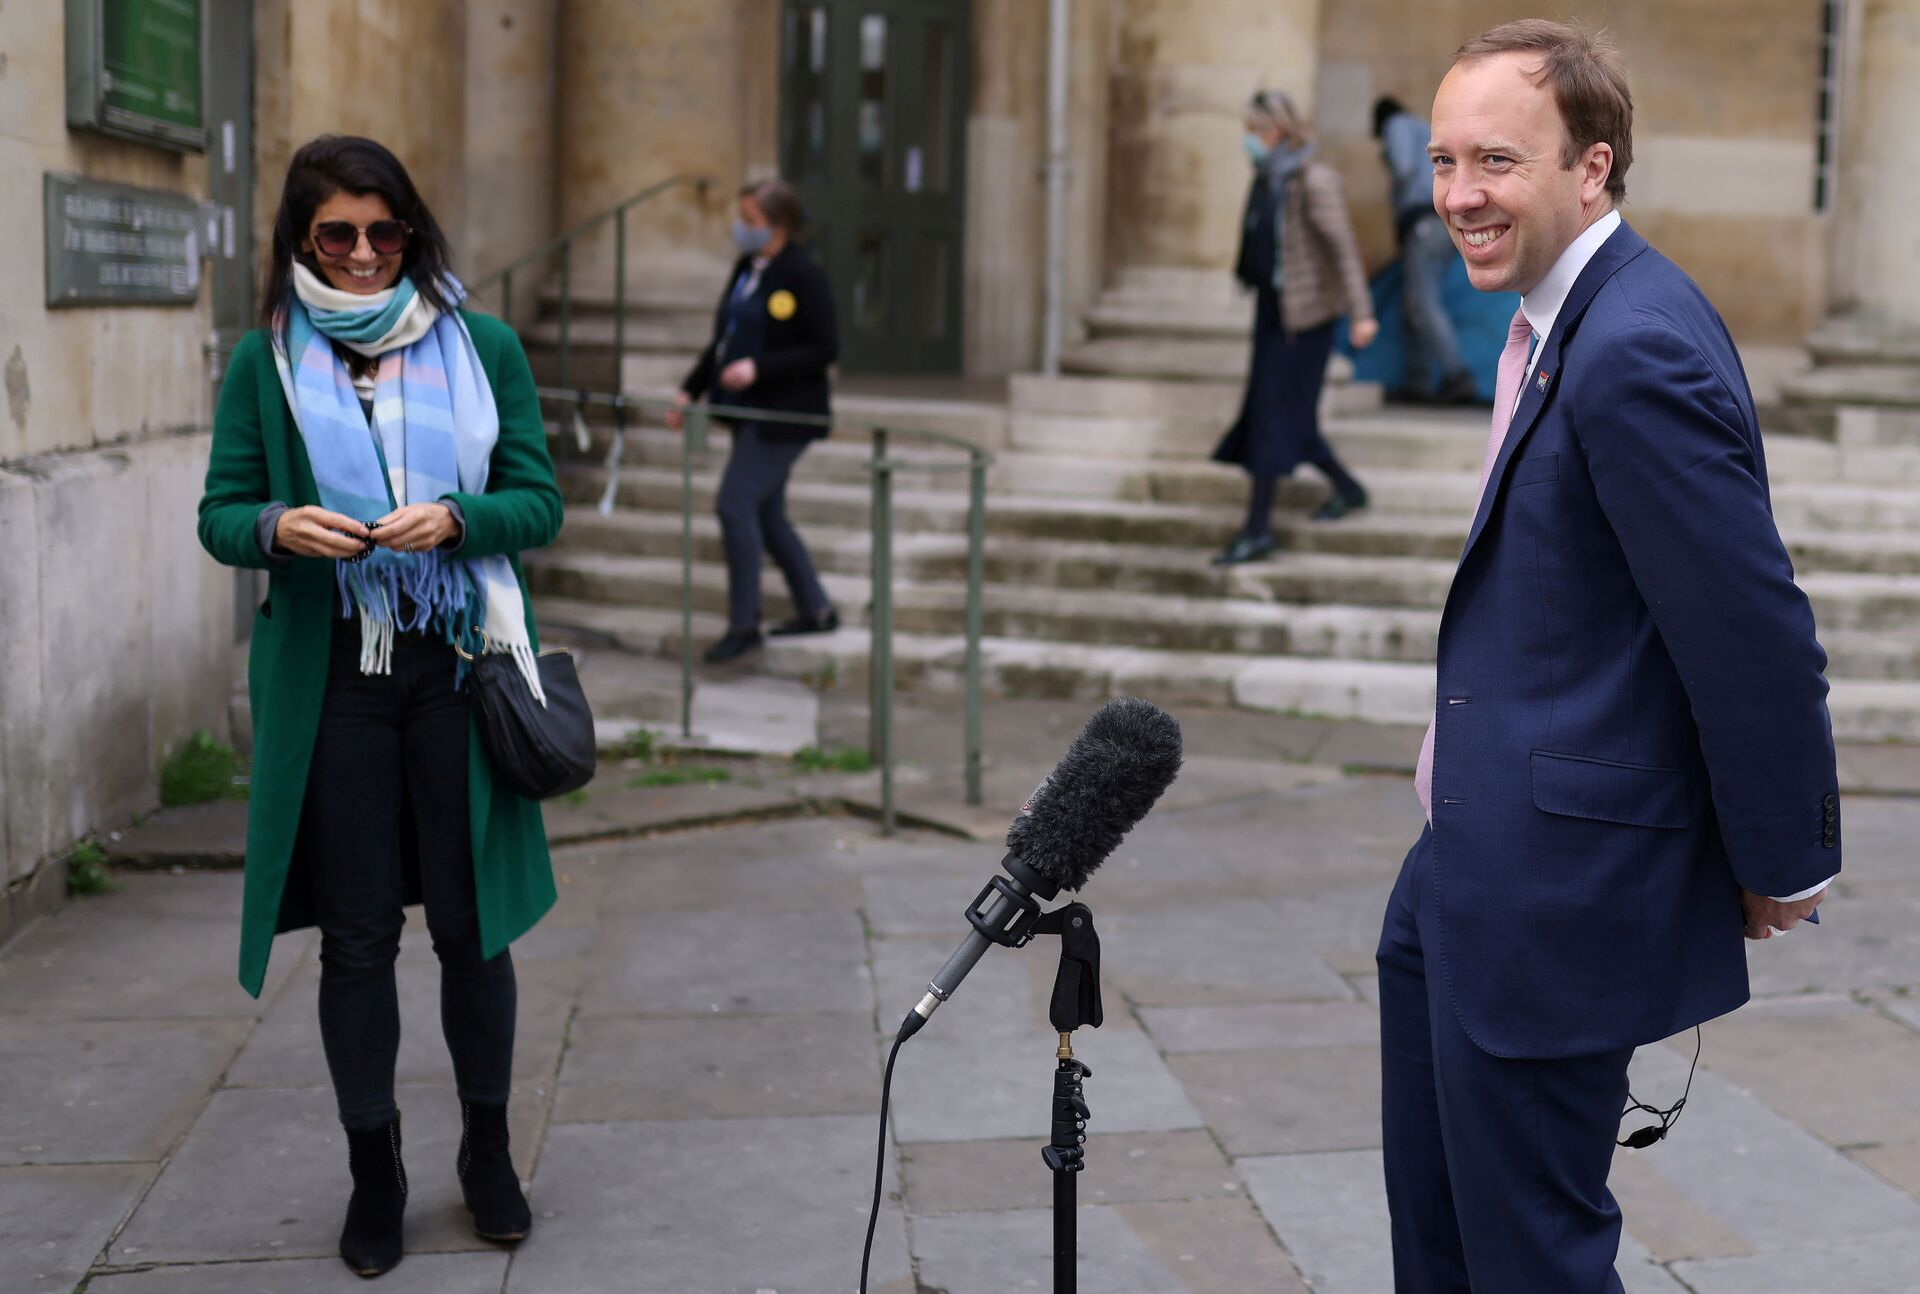 Britain's Health Secretary Matt Hancock smiles during a television interview as his aide Gina Coladangelo looks on, outside BBC's Broadcasting House in London - Sputnik International, 1920, 07.09.2021